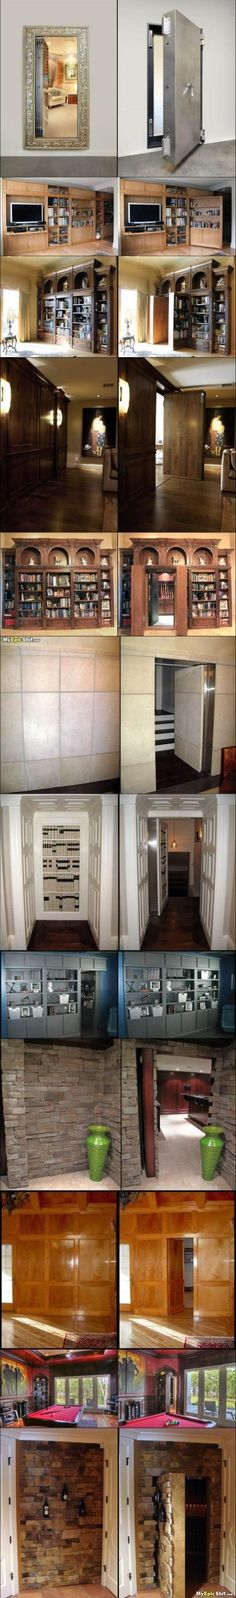 The secret room - wasn't sure where to pin this, but built-in storage was as good of a place as any!